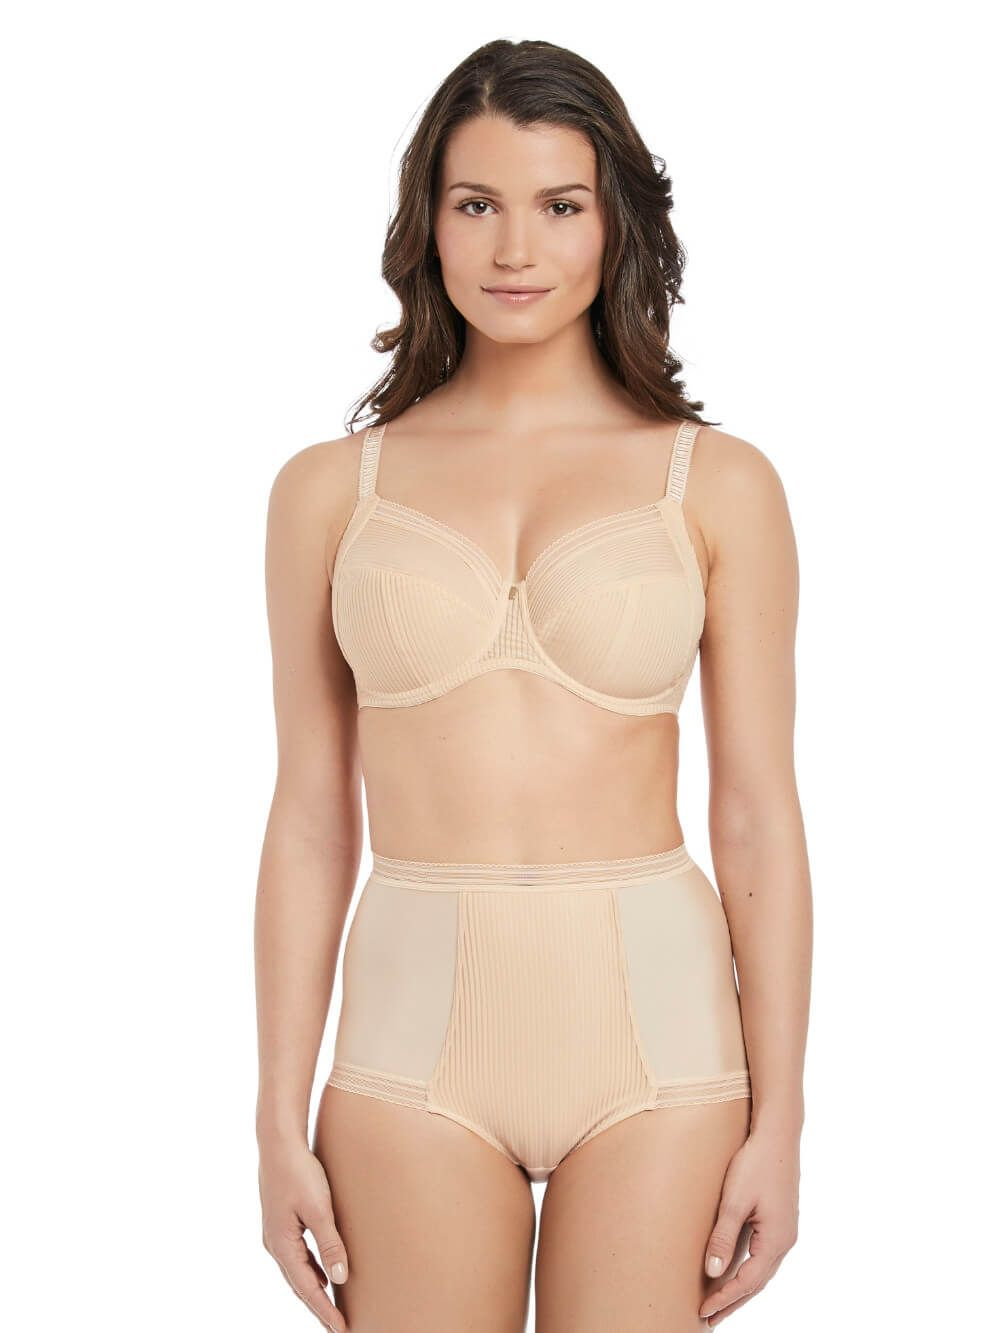 501bacc7a8a Fantasie Fusion Underwired Side Support Bra